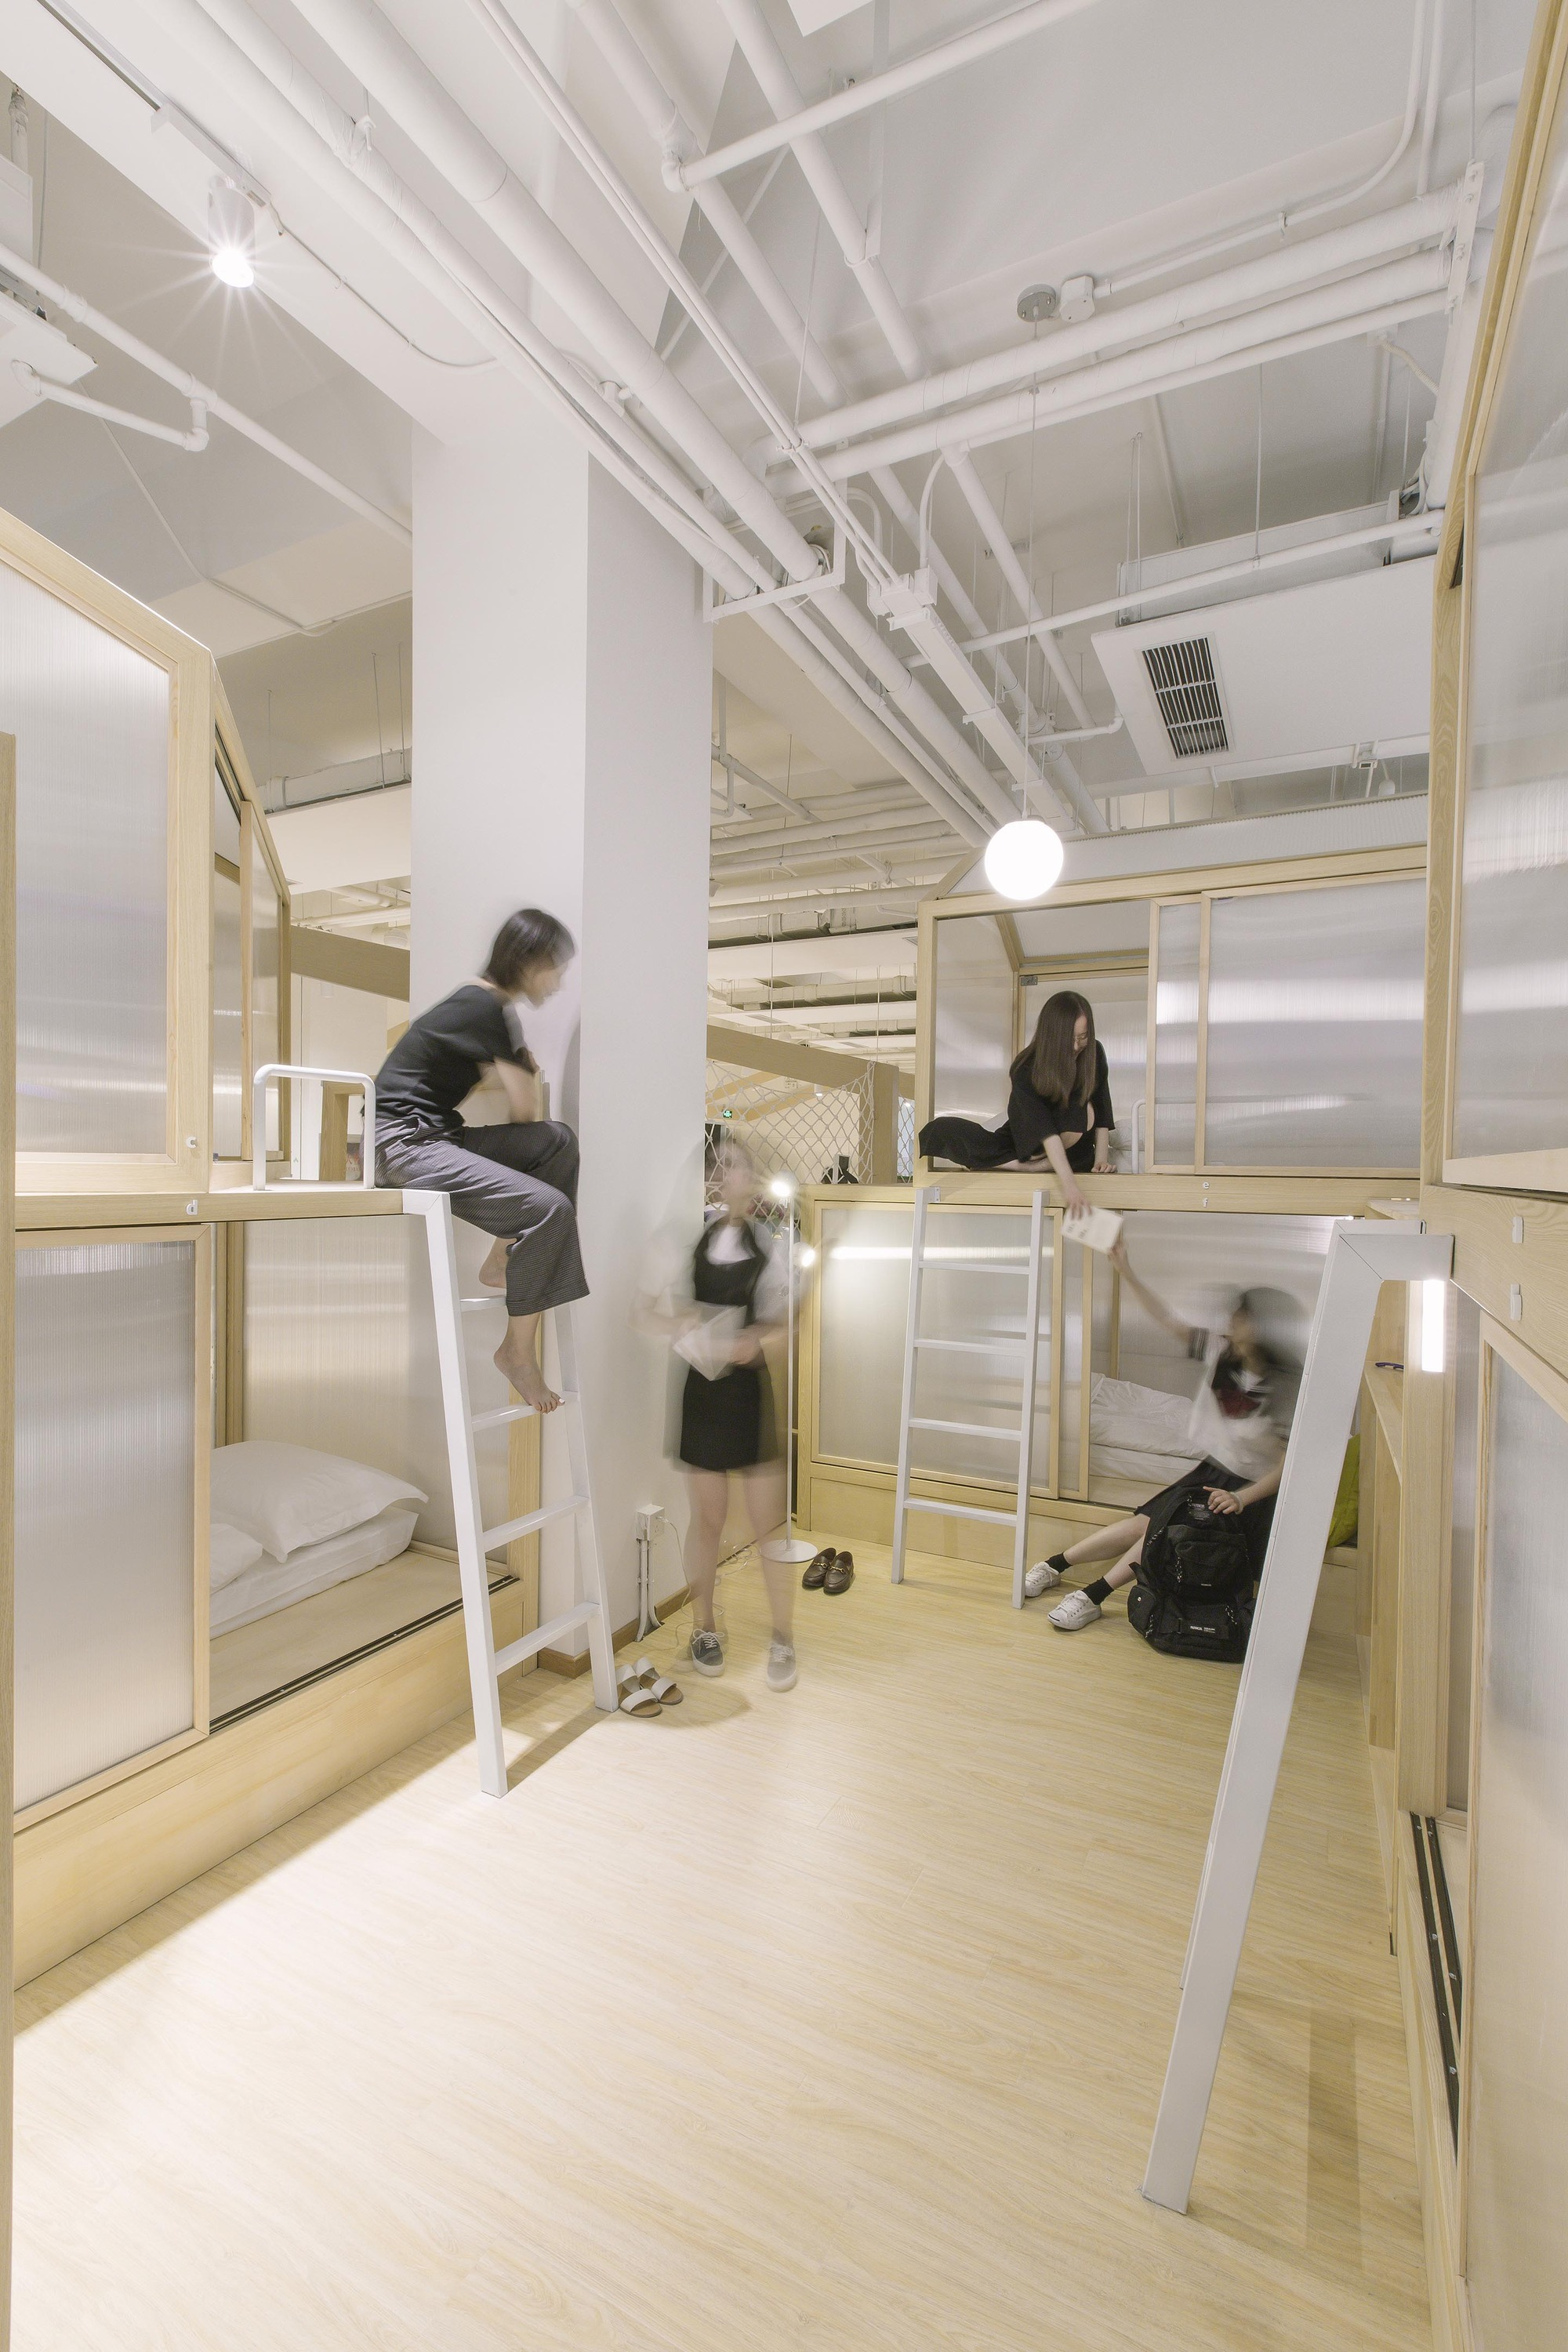 Together Hostel Cao Pu Studio Archdaily